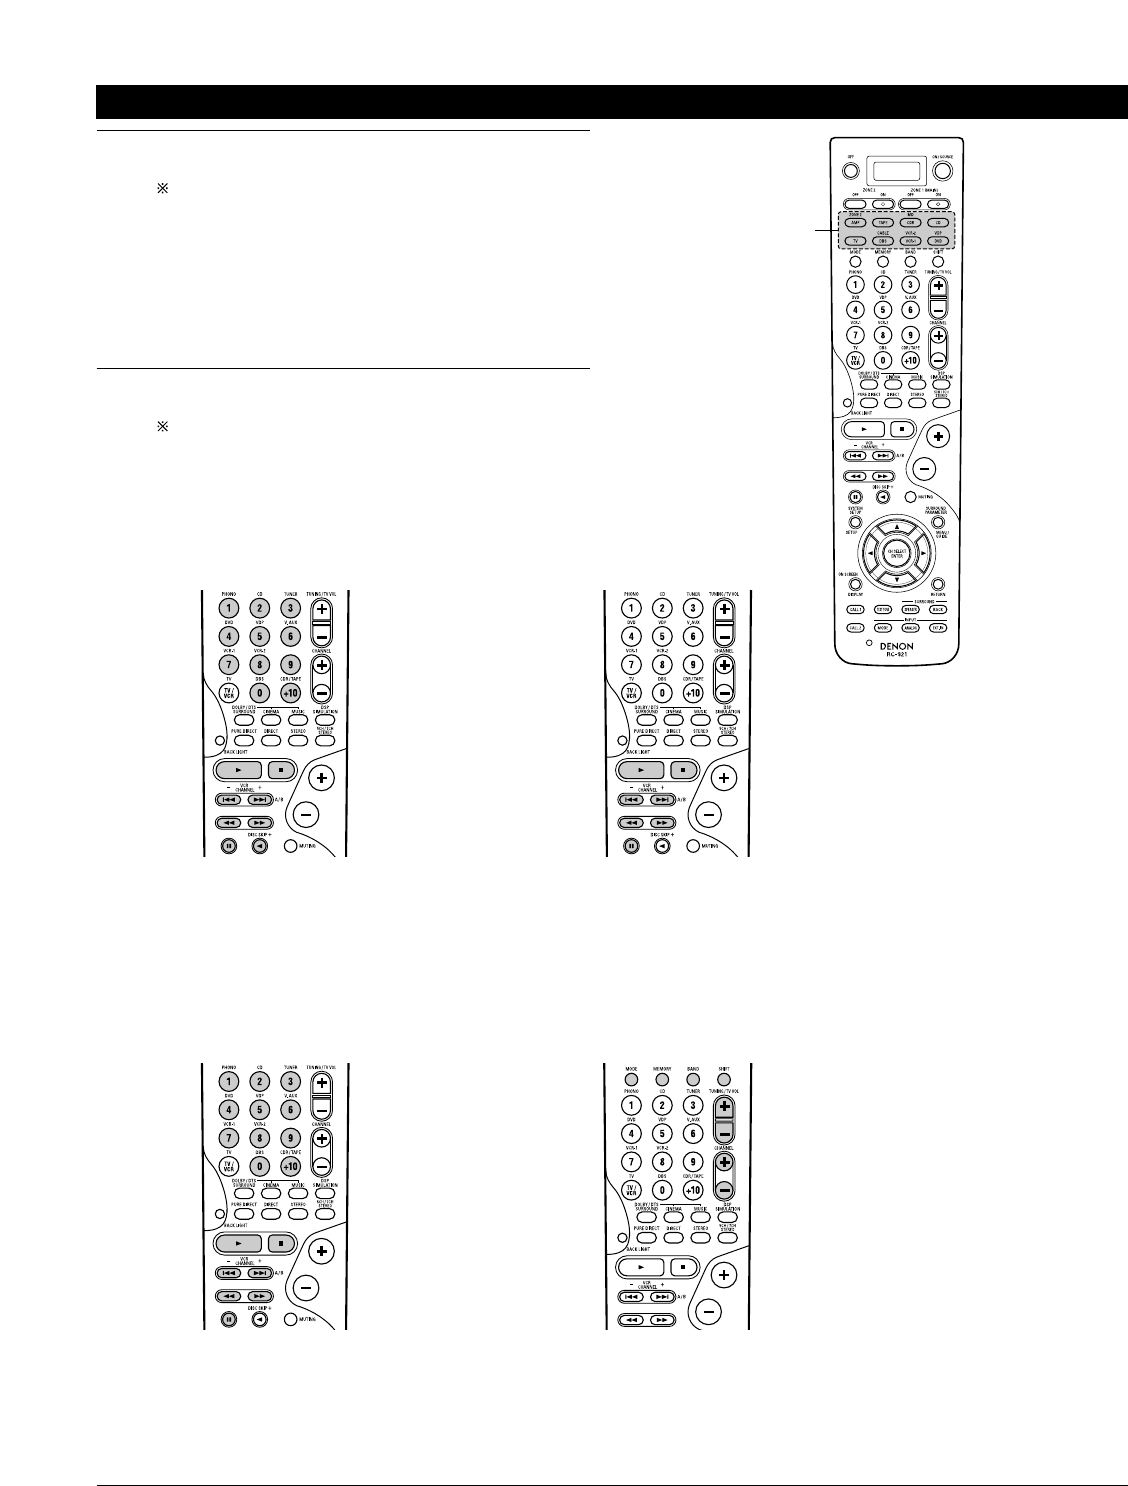 Page 35 of Denon Stereo System AVR-3803 User Guide